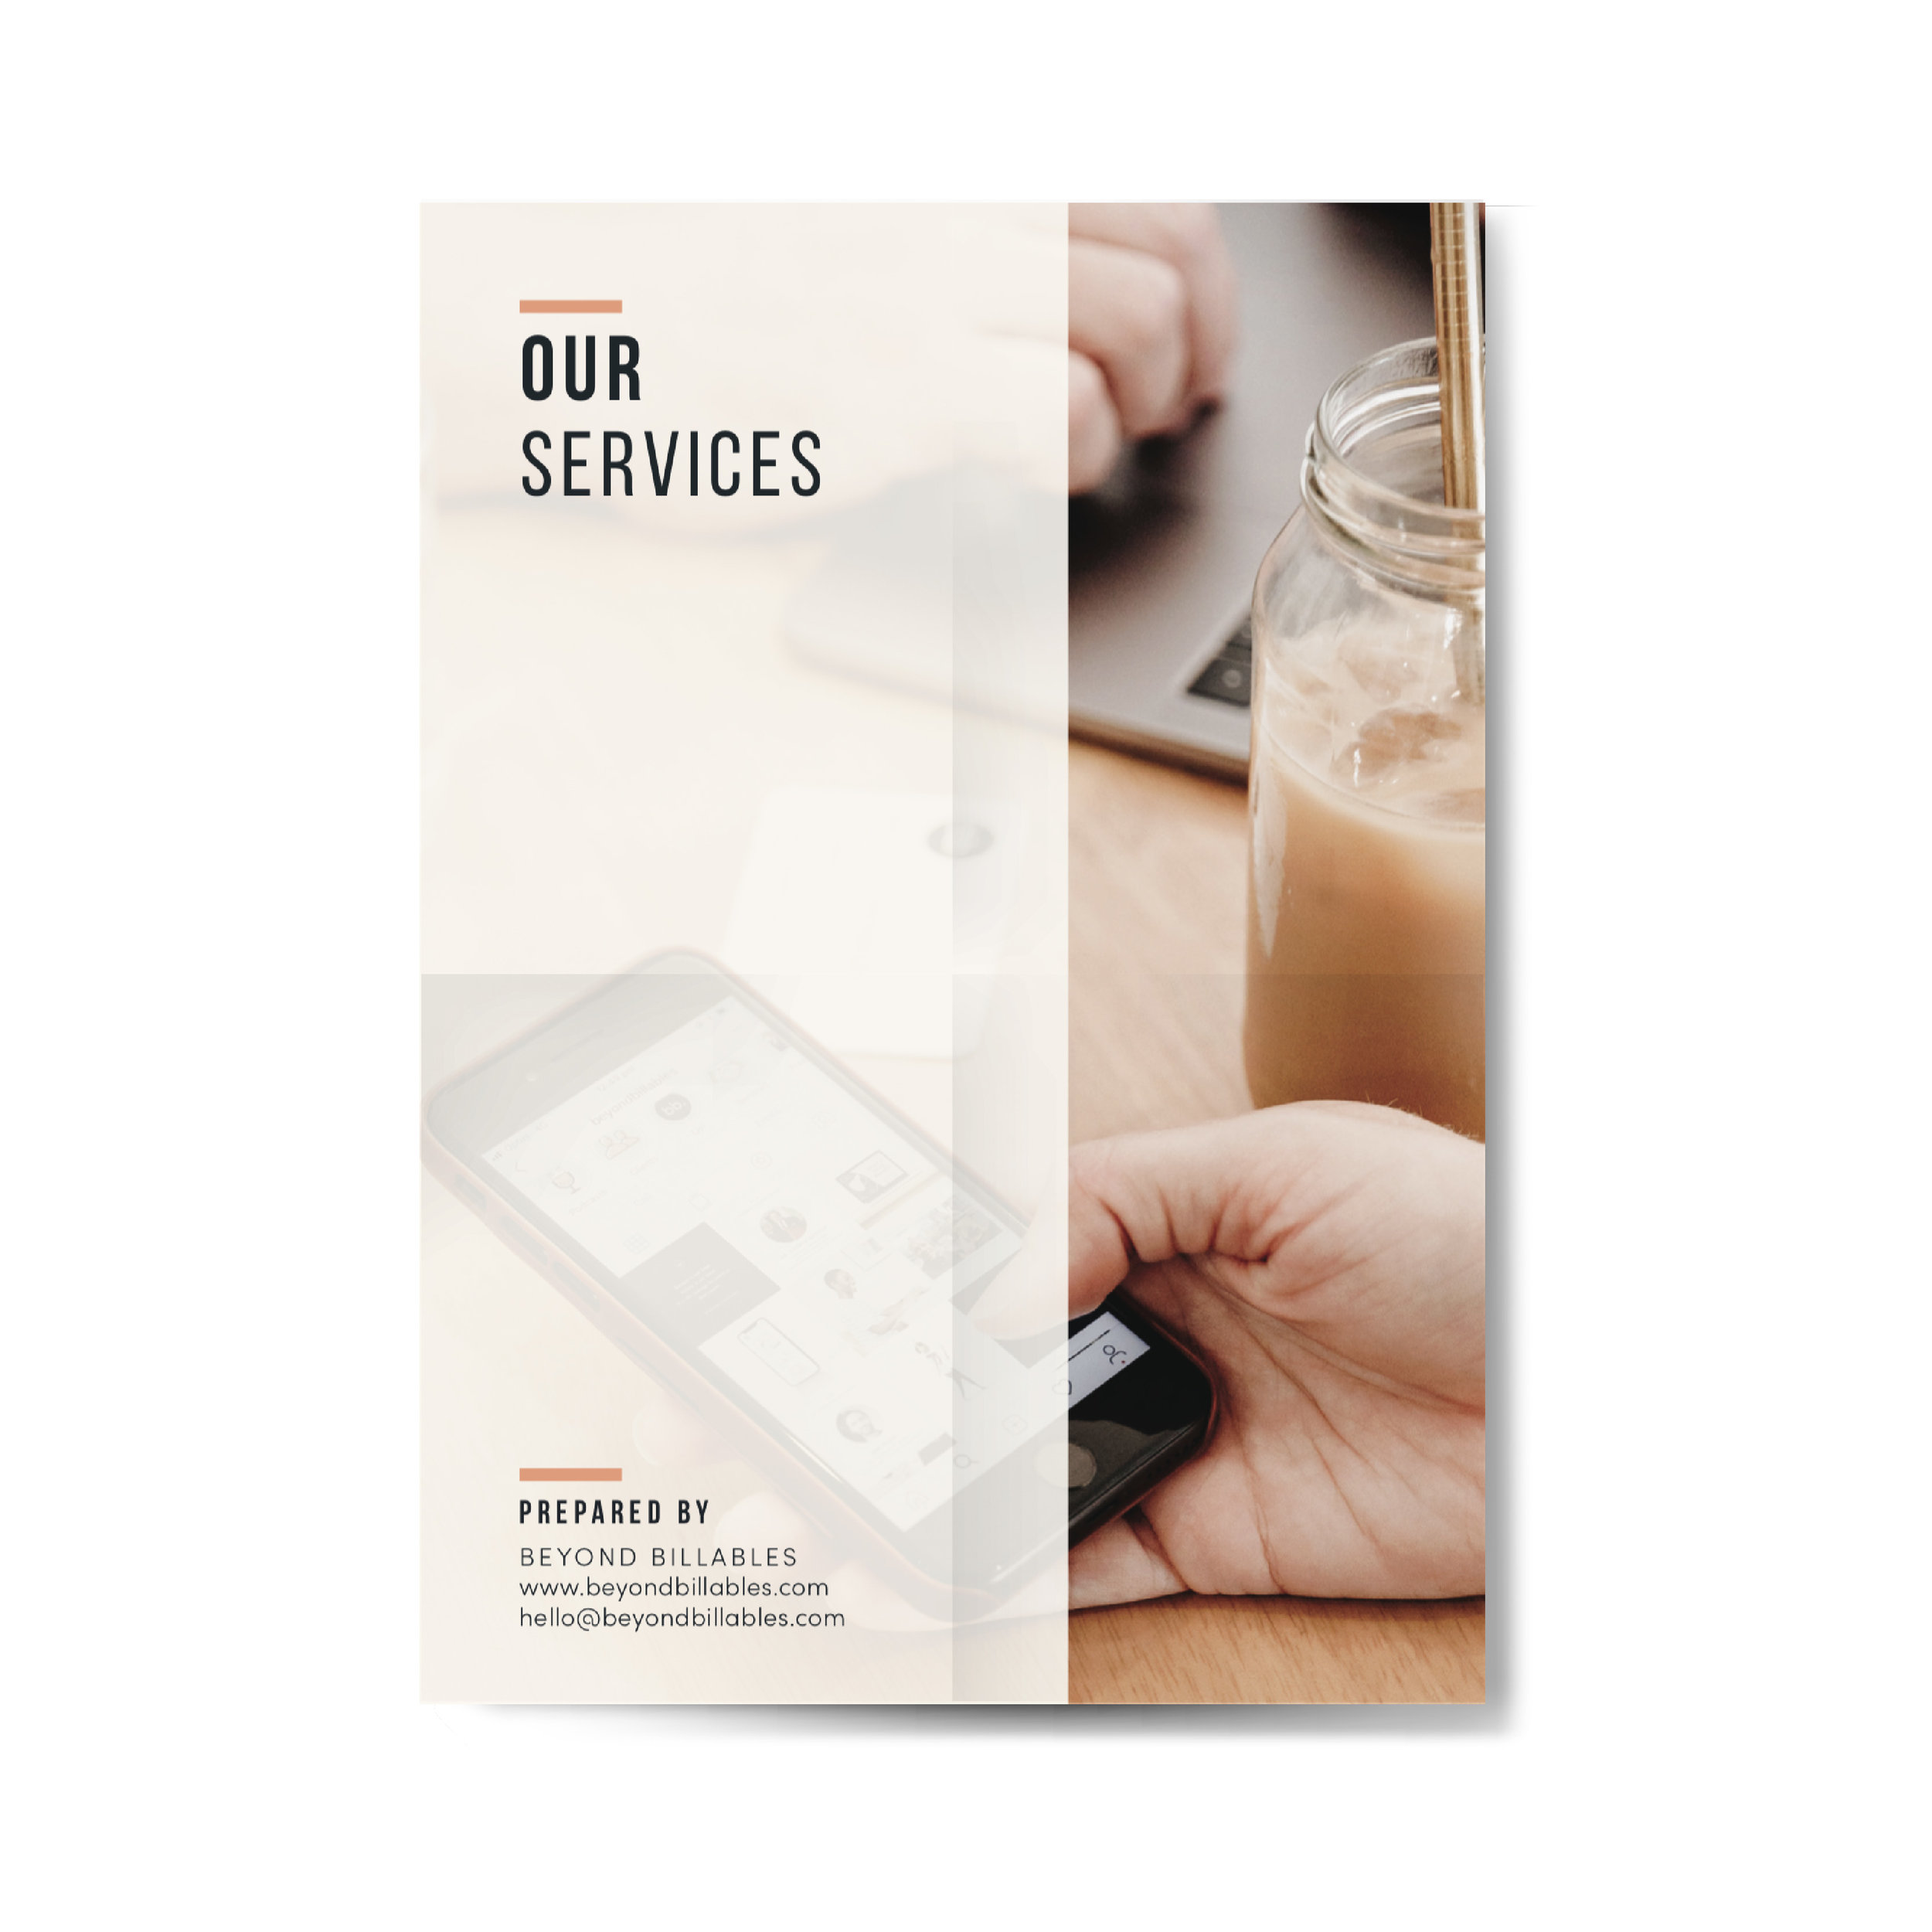 Our Services Guide